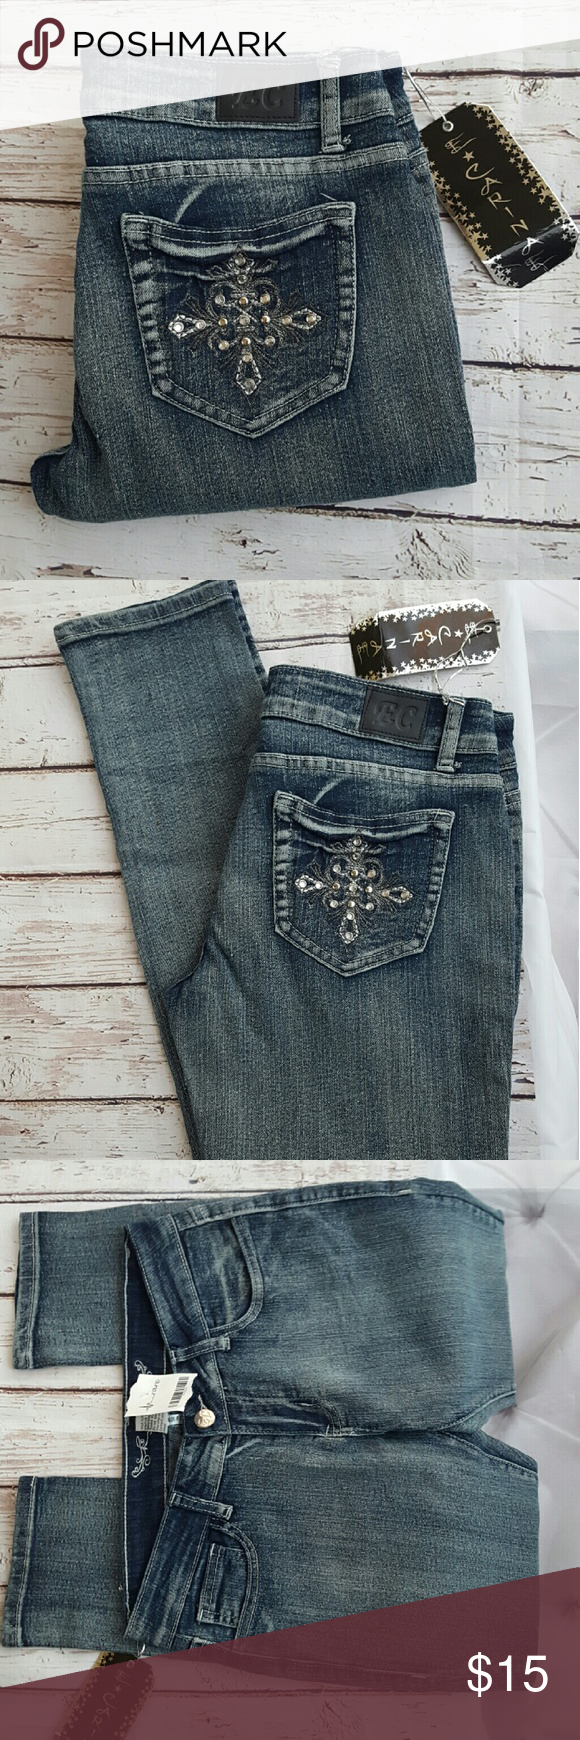 Ecarinae Nwt Bling Pocket Skinny Stretch Jeans 11 My Posh Rodeo Pants Ellie In Black E Carinae Boutique Brand New With Tags